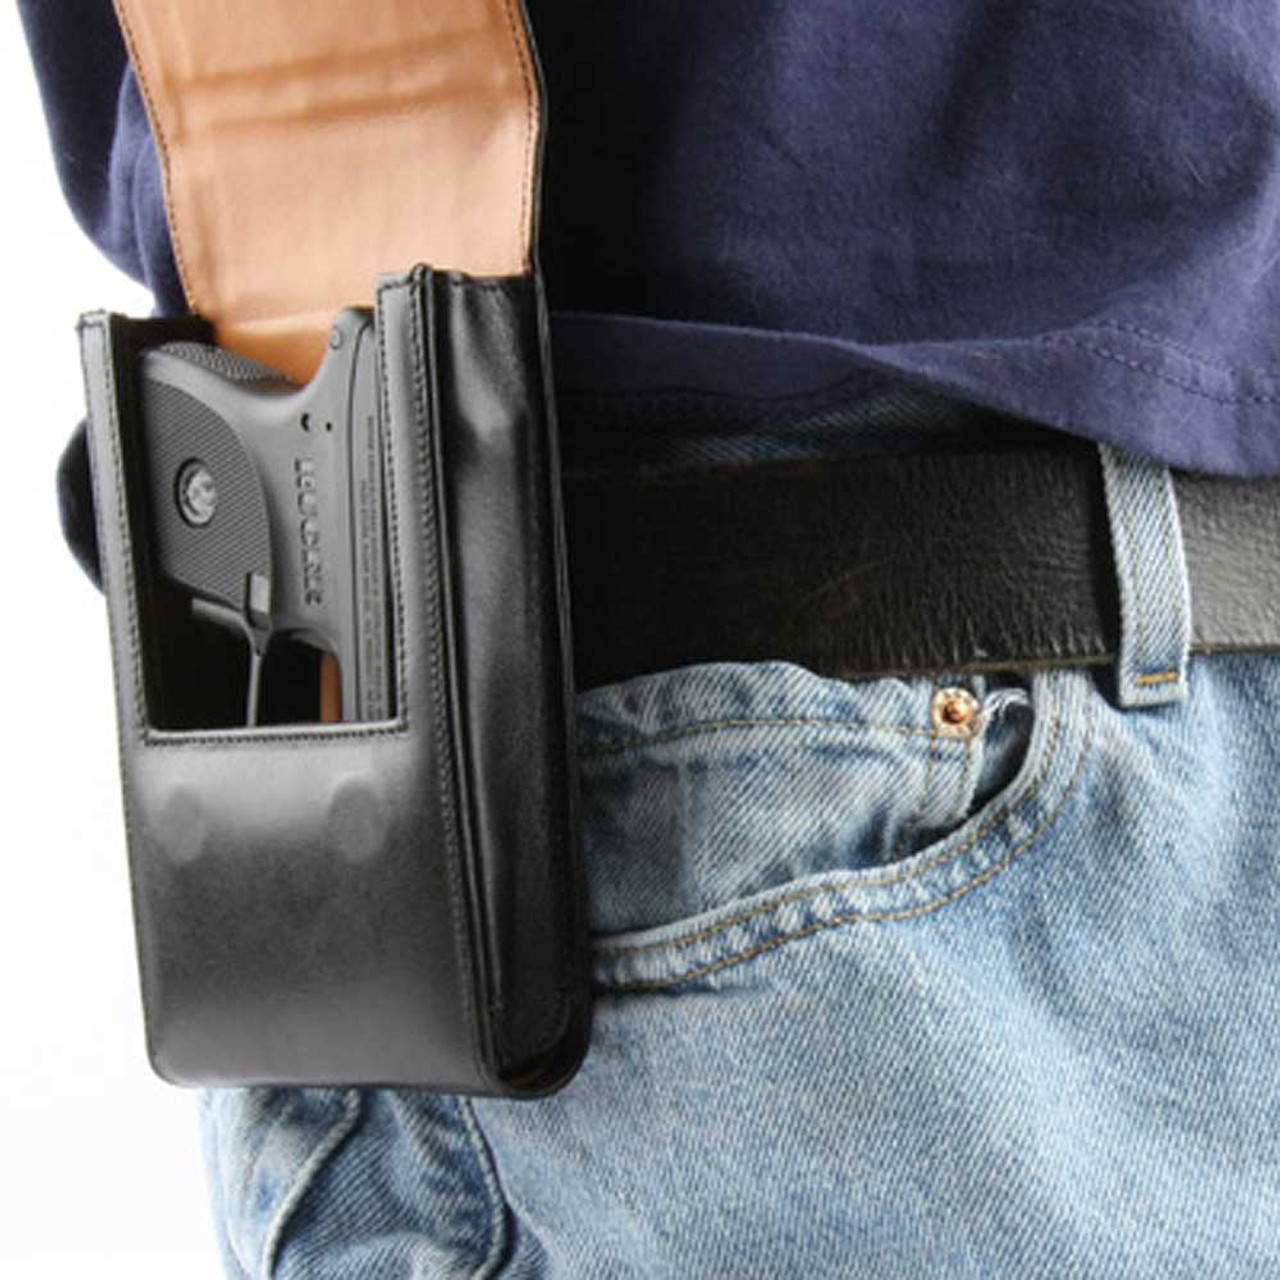 Kahr P9 Sneaky Pete Holster (Belt Clip)